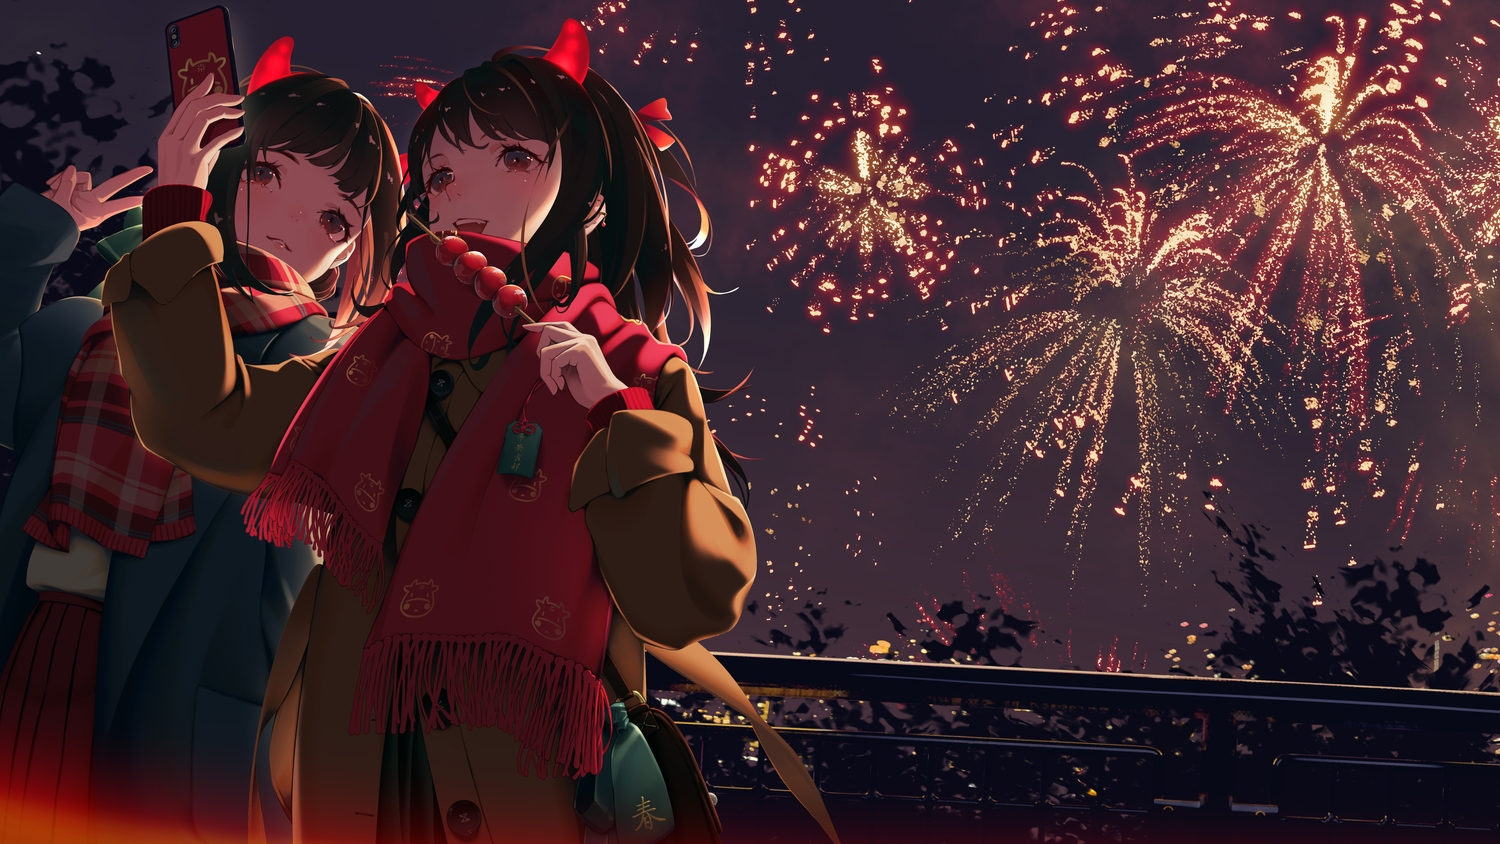 2girls aliasing black_hair brown_eyes camera candy fang fireworks food fruit horns night original phone scarf zhuang_yao